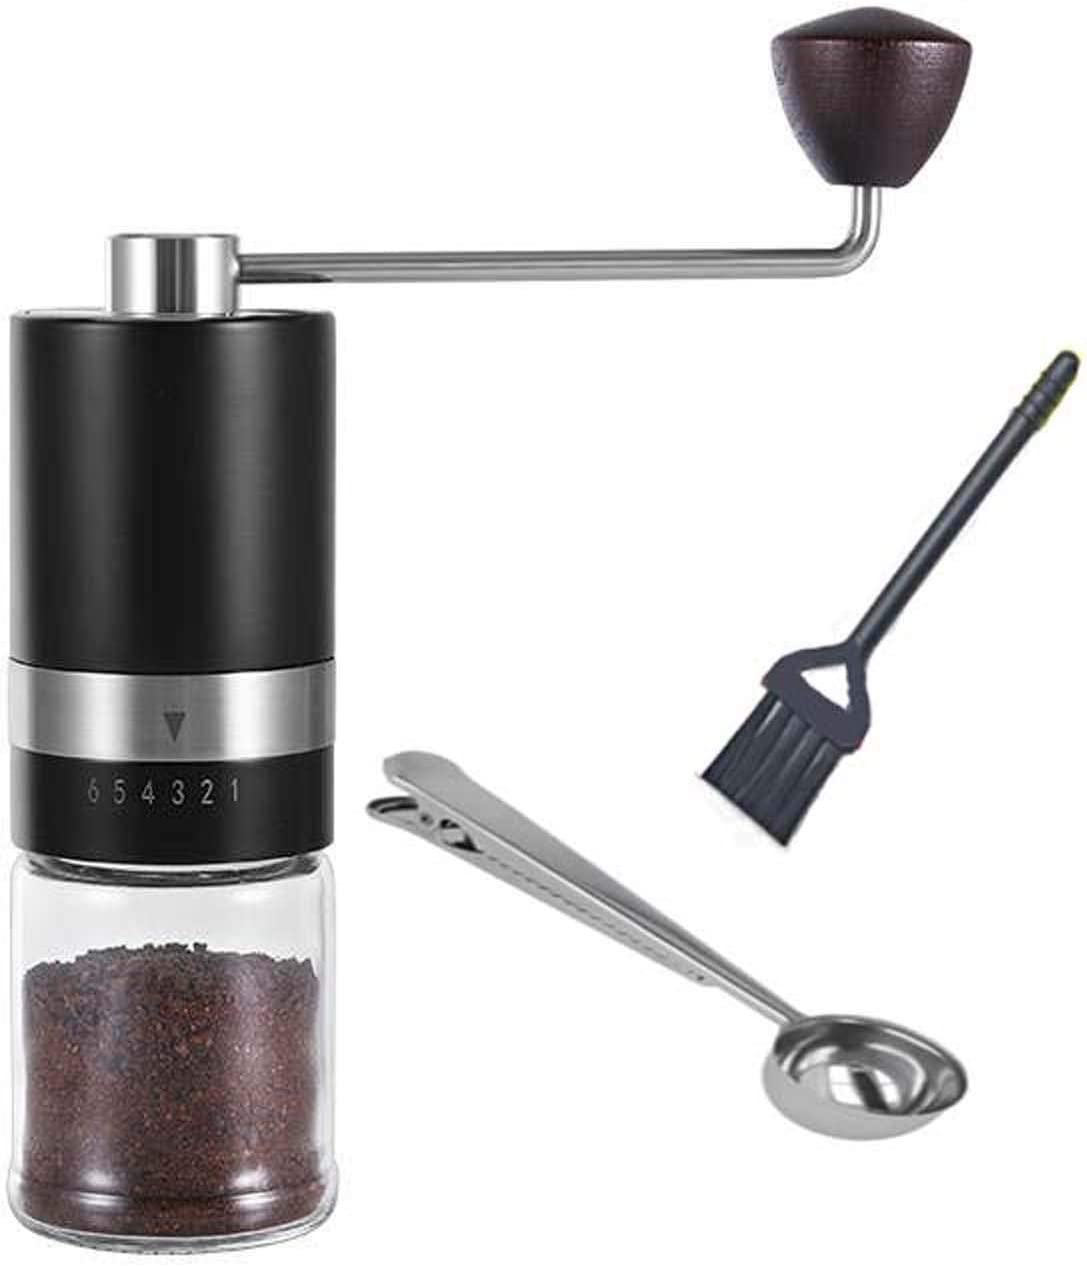 HEIHOX Hand Coffee Grinder with Adjustable Conical Stainless Steel Burr Mill Capacity 30g Portable Mill Faster Grinding Efficiency Espresso to Coarse for Office Camping Home Manual Coffee Grinder